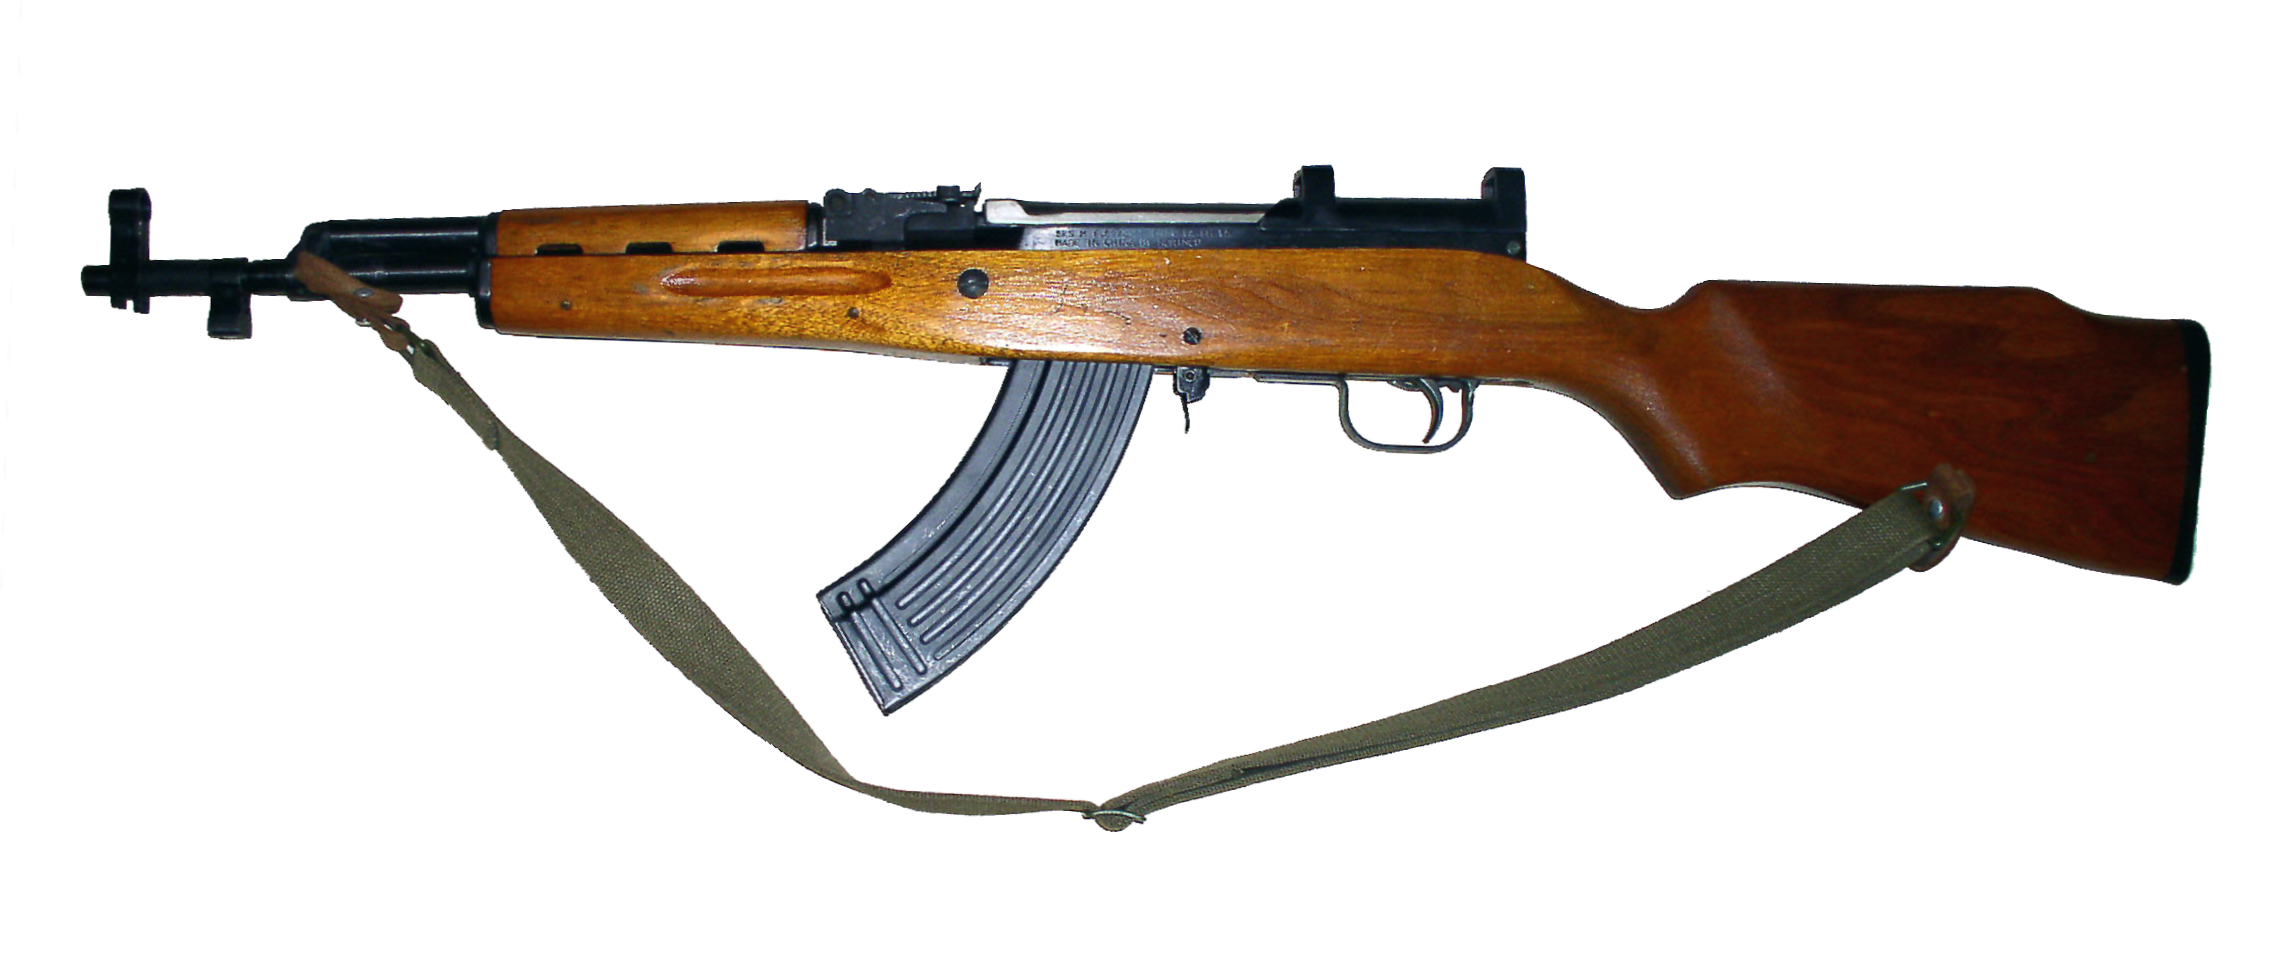 Sks Rifle With Banana Clip Dont Enter Unannounced Please And